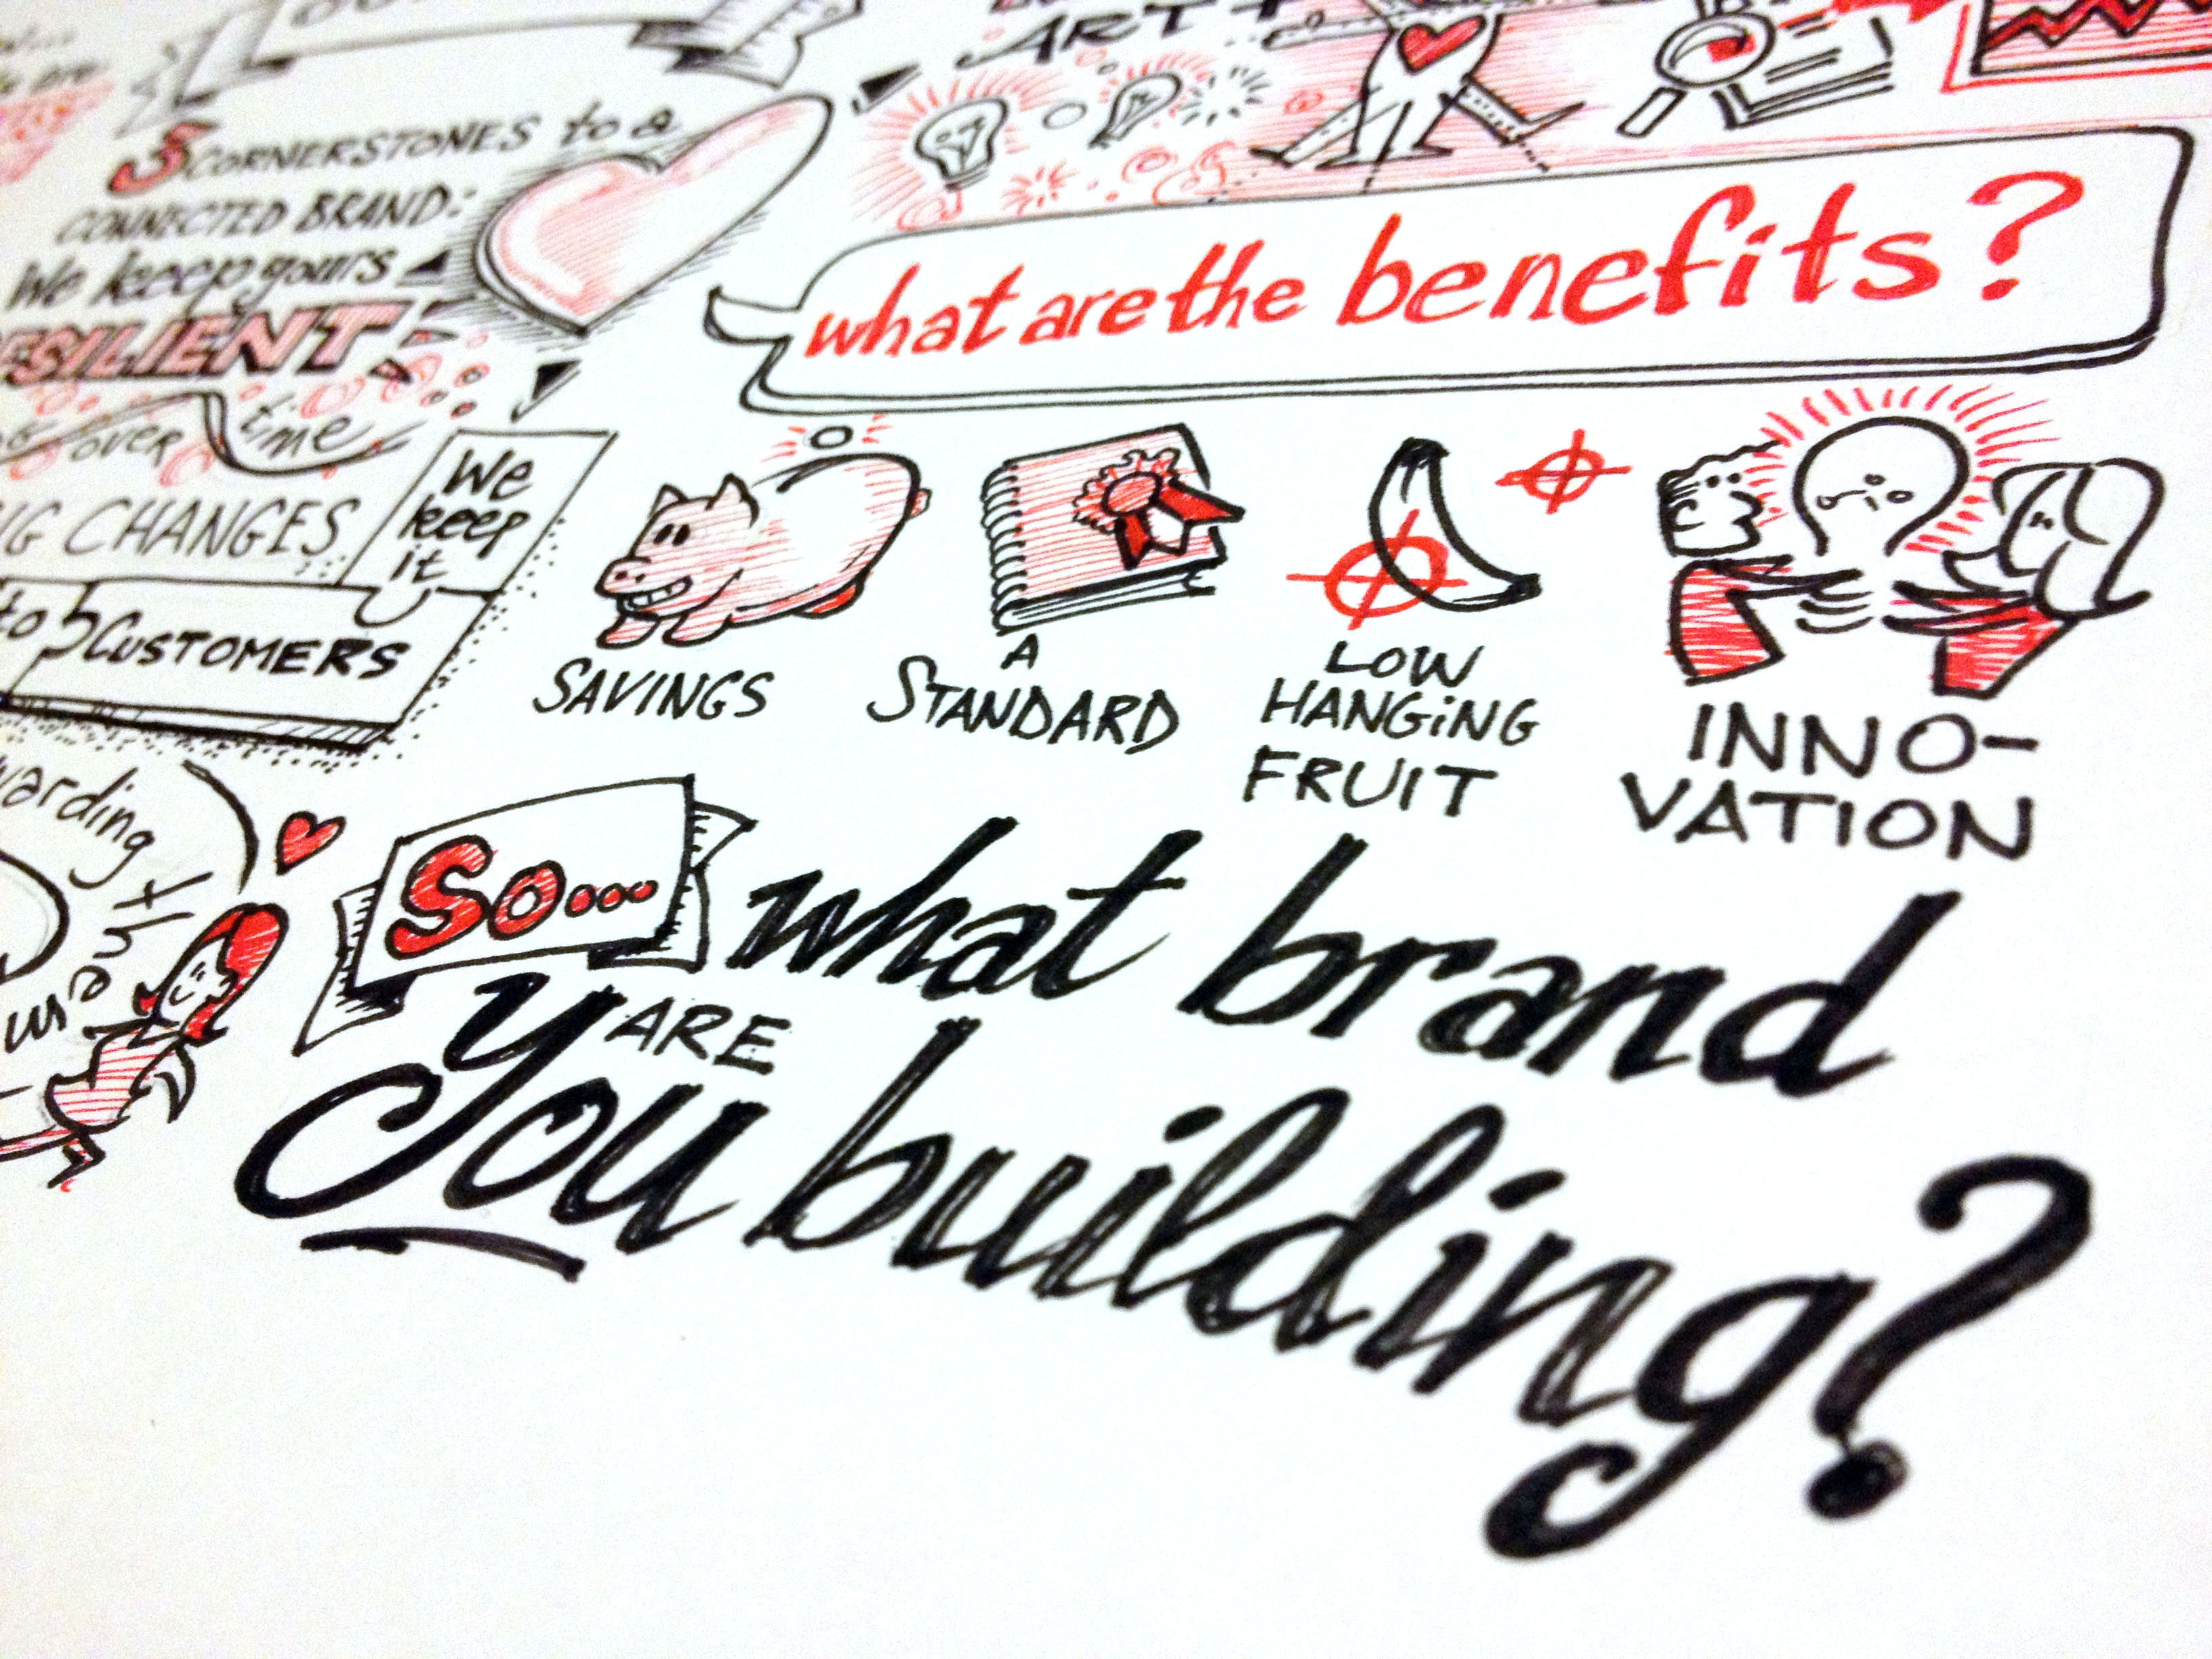 Portion of the sketchnote for TheConnectedBrand